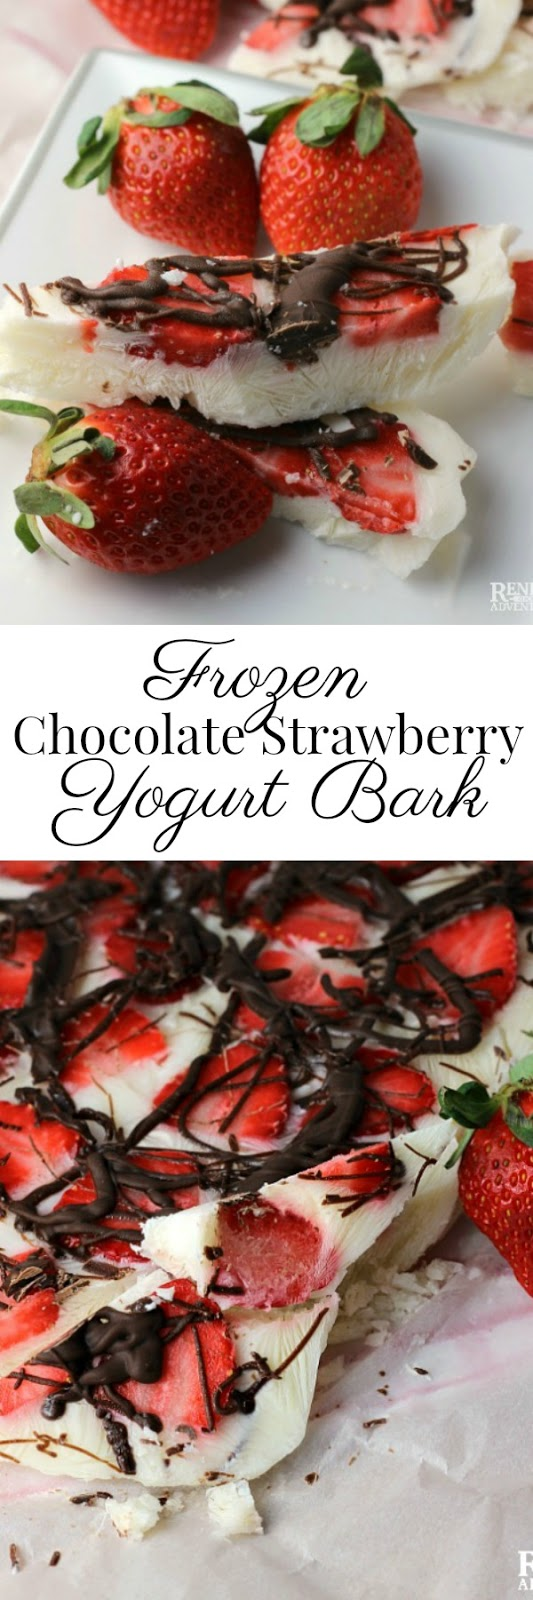 Frozen Strawberry Chocolate Yogurt Bark | Renee's Kitchen Adventures - Easy, healthy dessert or snack made with fresh Florida strawberries, yogurt, and dark chocolate @Flastrawberries #SundaySupper #FLStrawberry #healthysnack #healthyrecipe